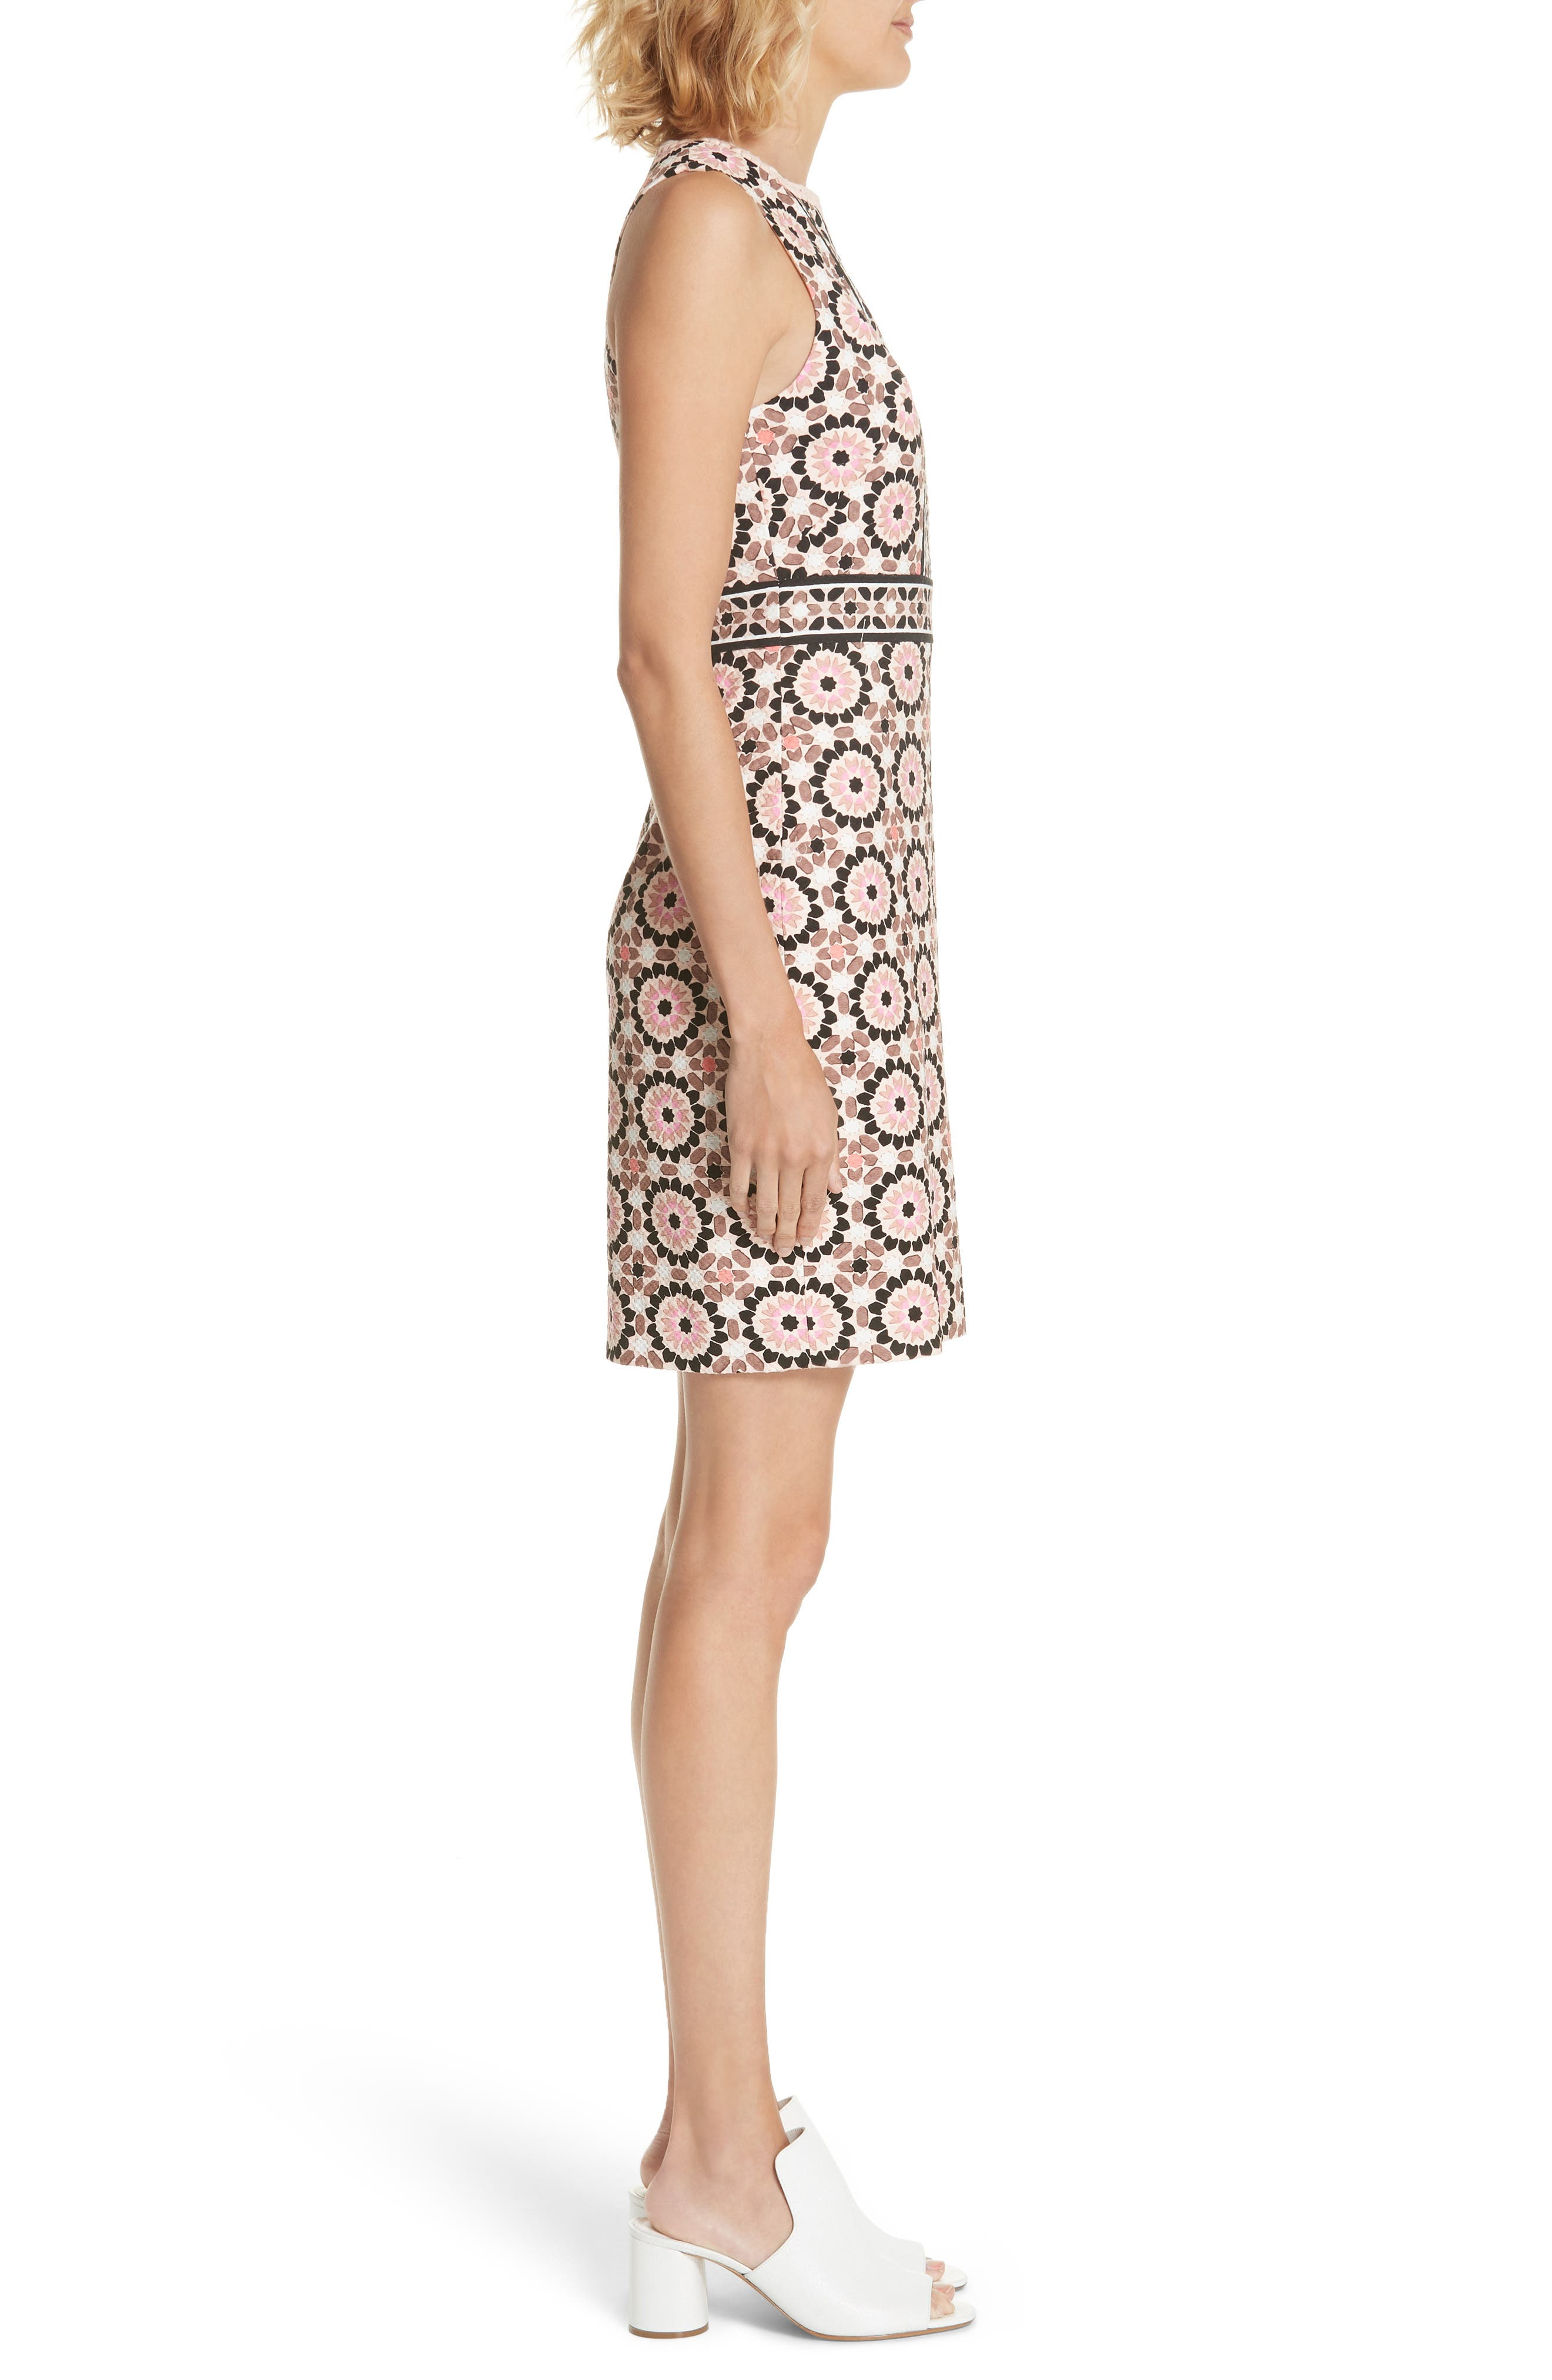 floral mosaic jacquard sheath dress,                             Alternate thumbnail 4, color,                             Pearl Pink Multi